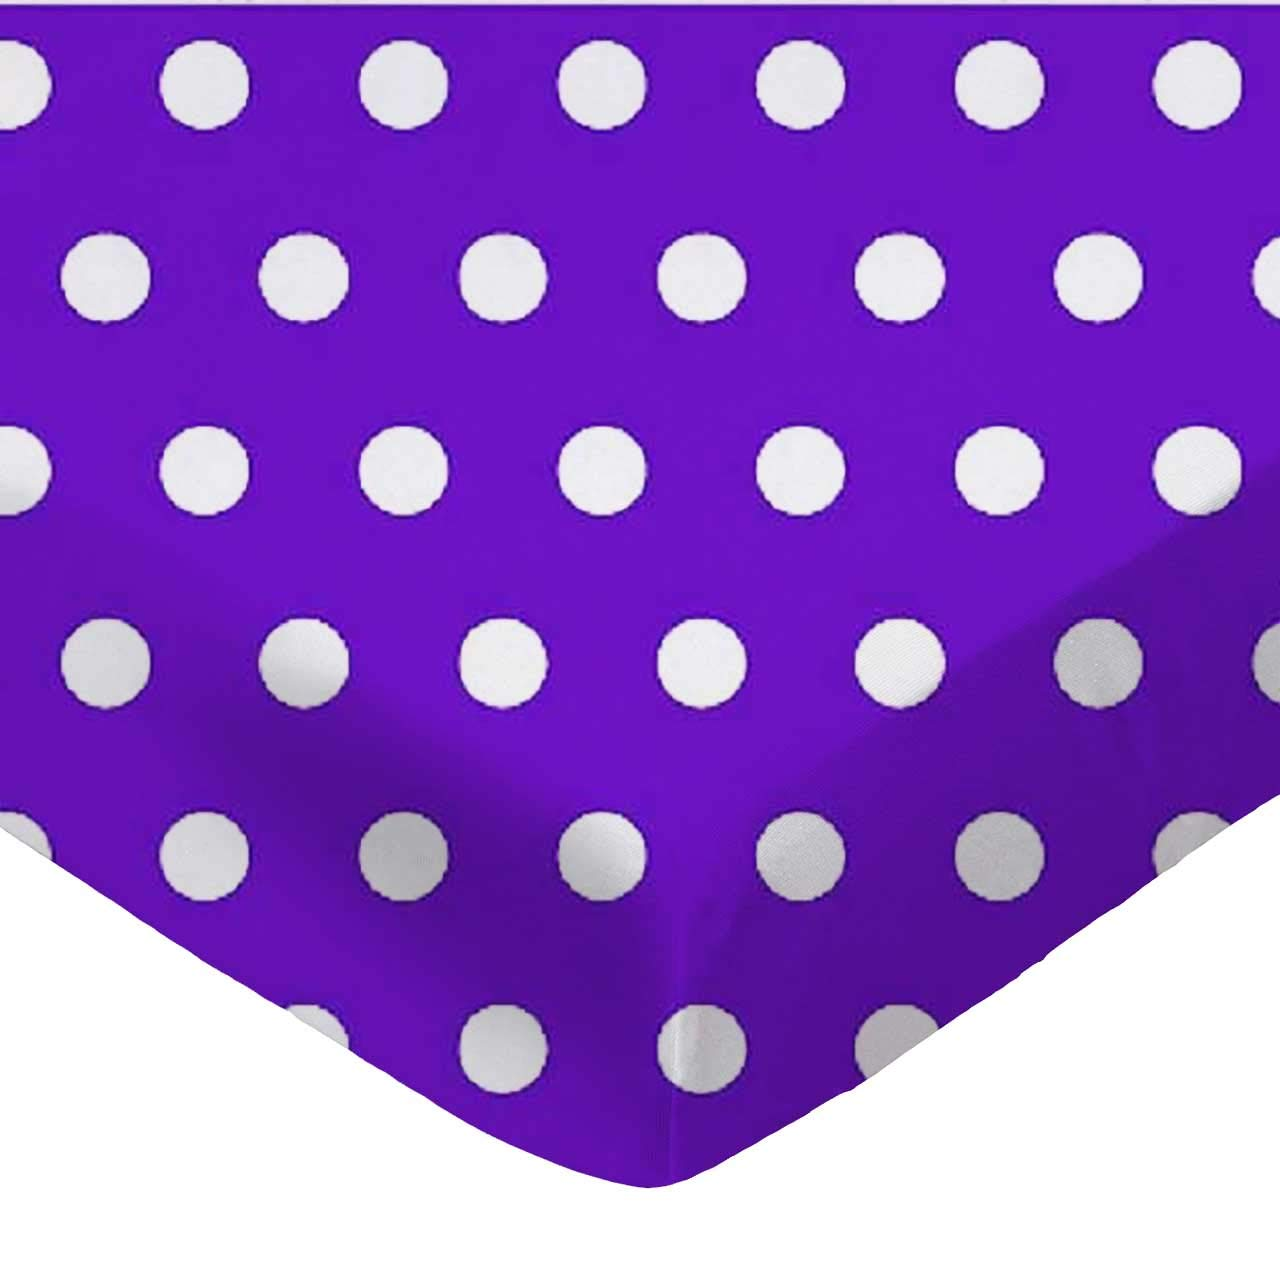 SheetWorld Fitted Pack N Play (Graco) Sheet - Polka Dots Purple - Made In USA